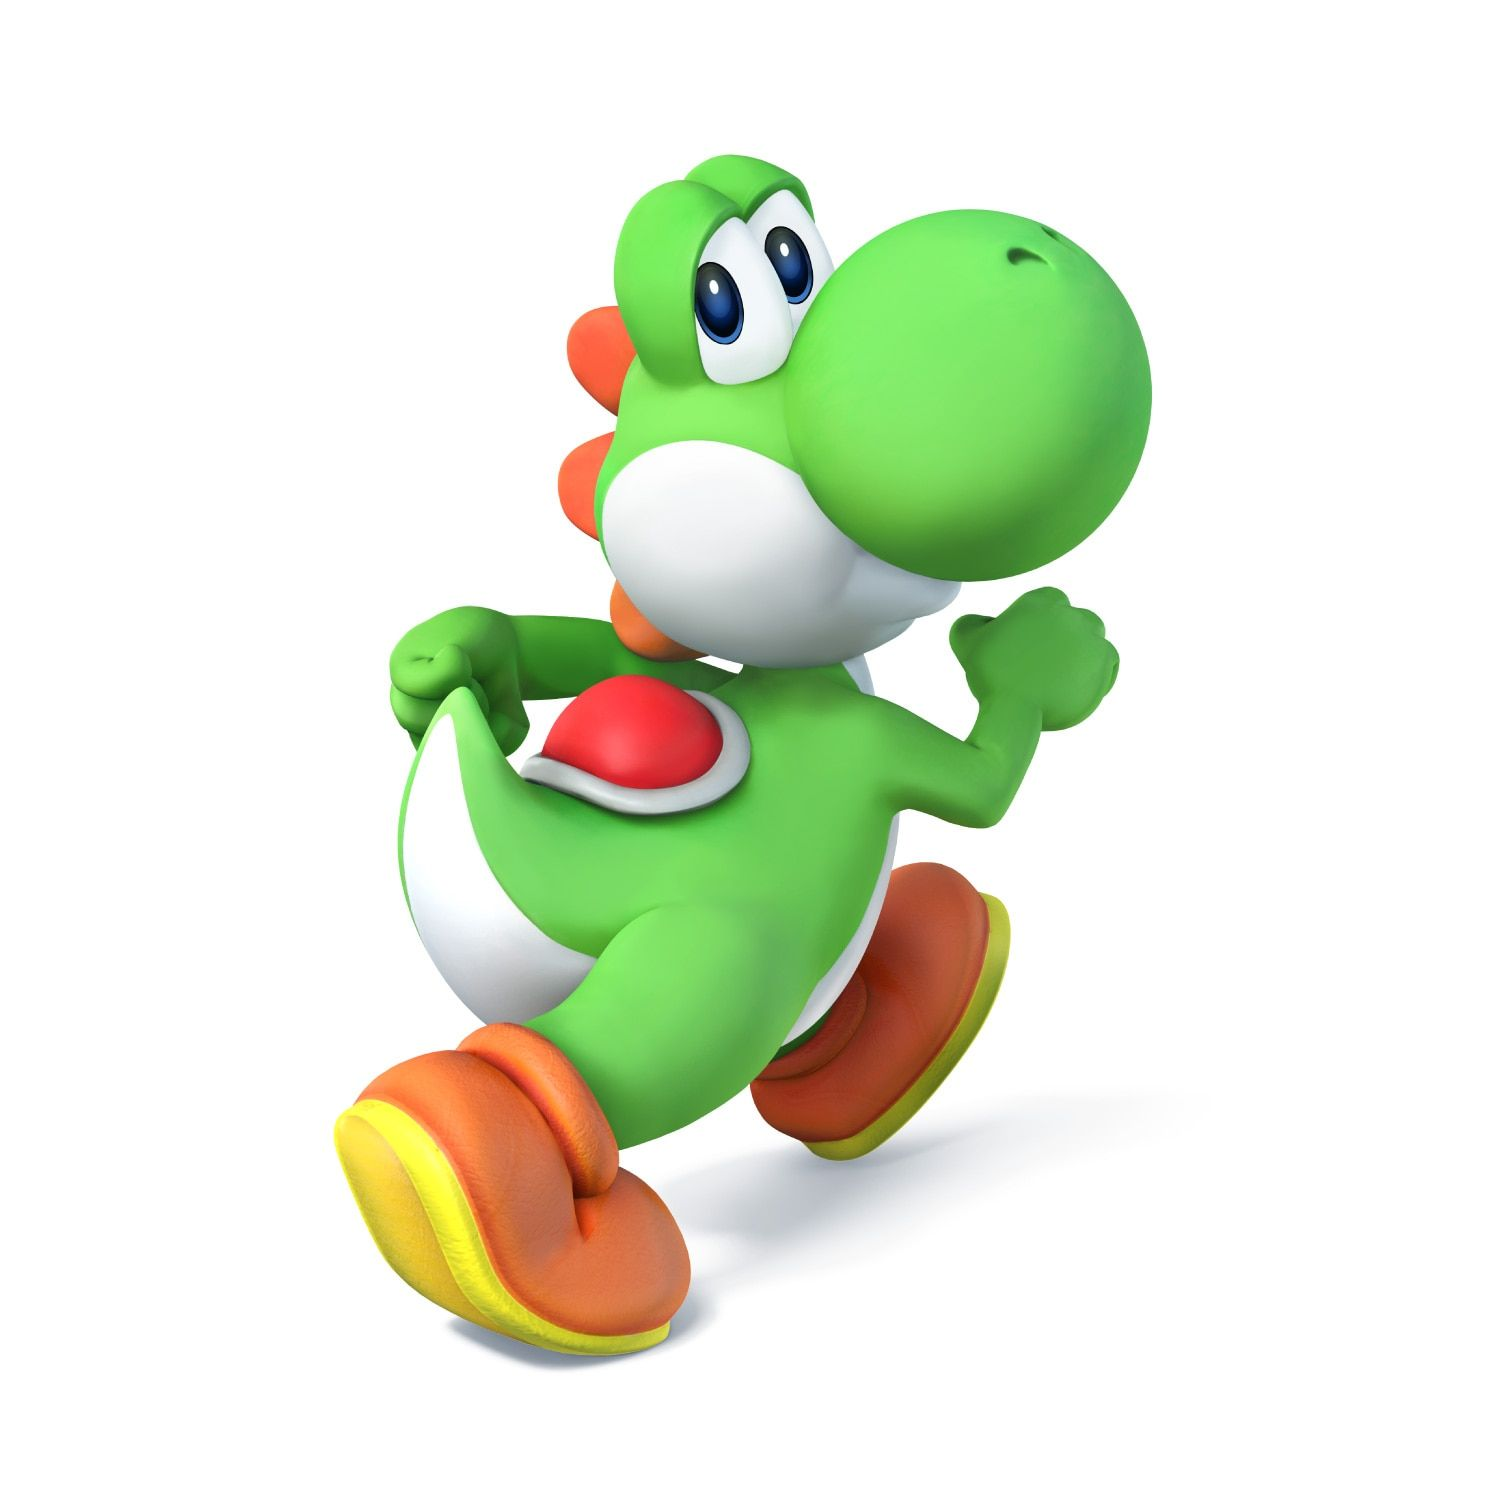 Yoshis on the march!